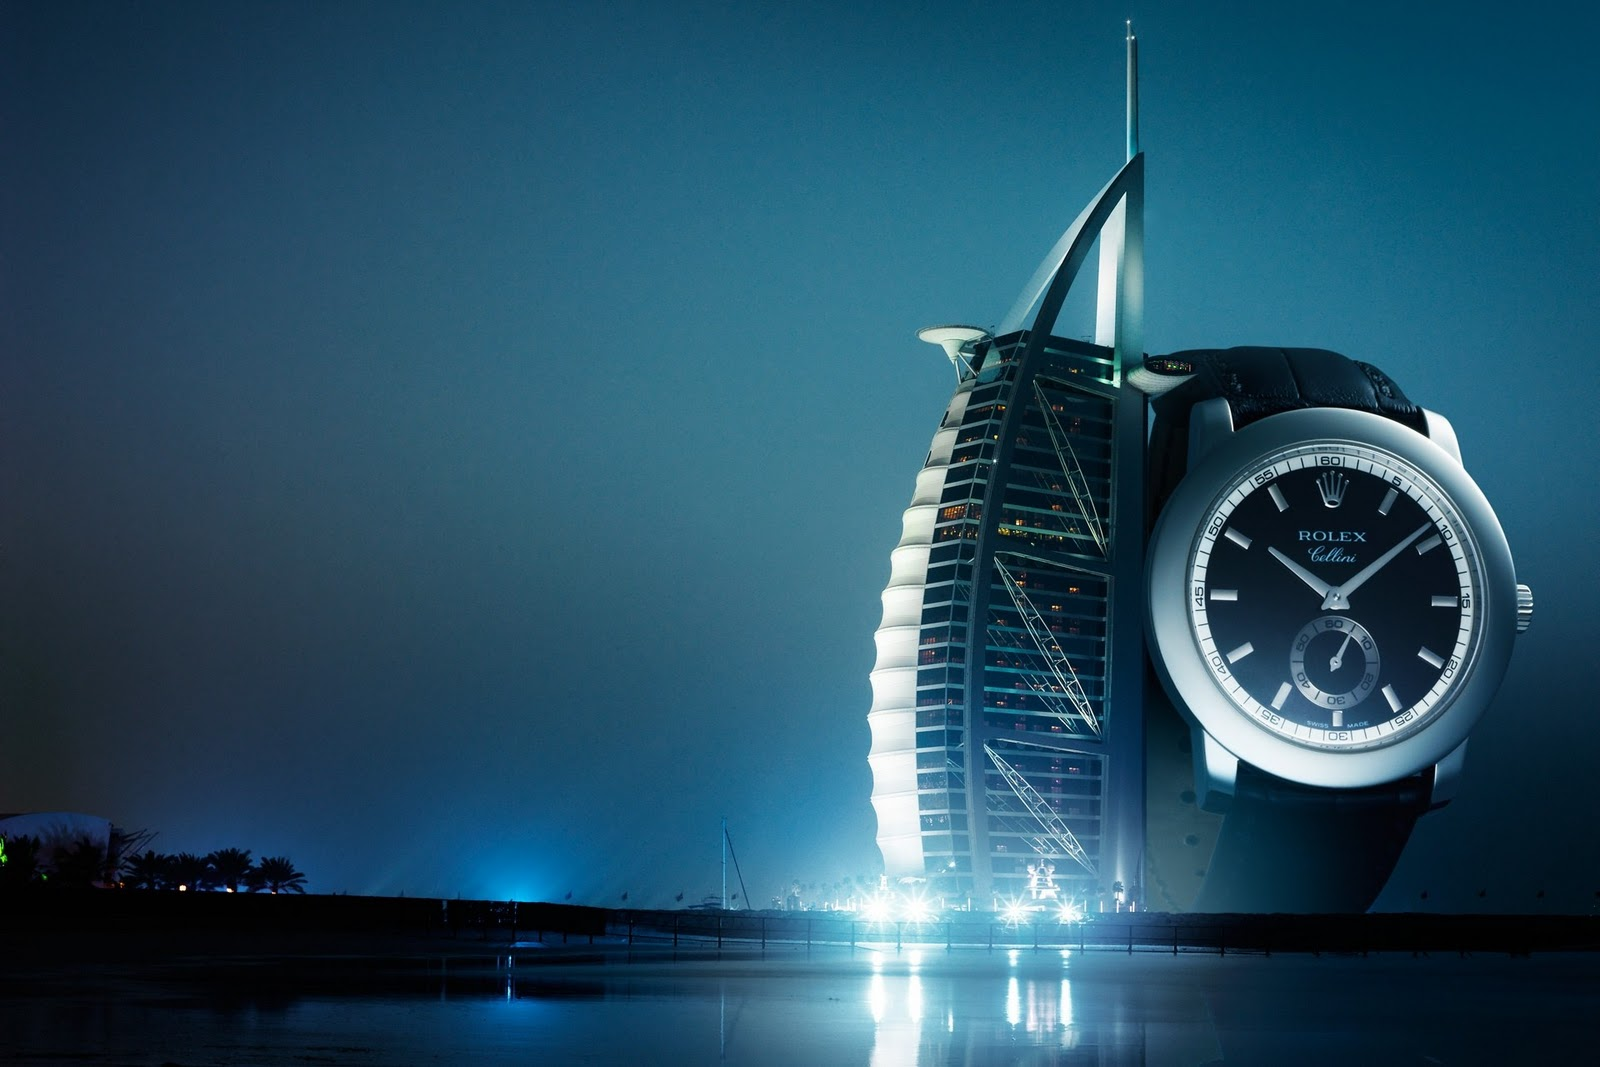 Wrist Watches Wallpapers - Screensaver